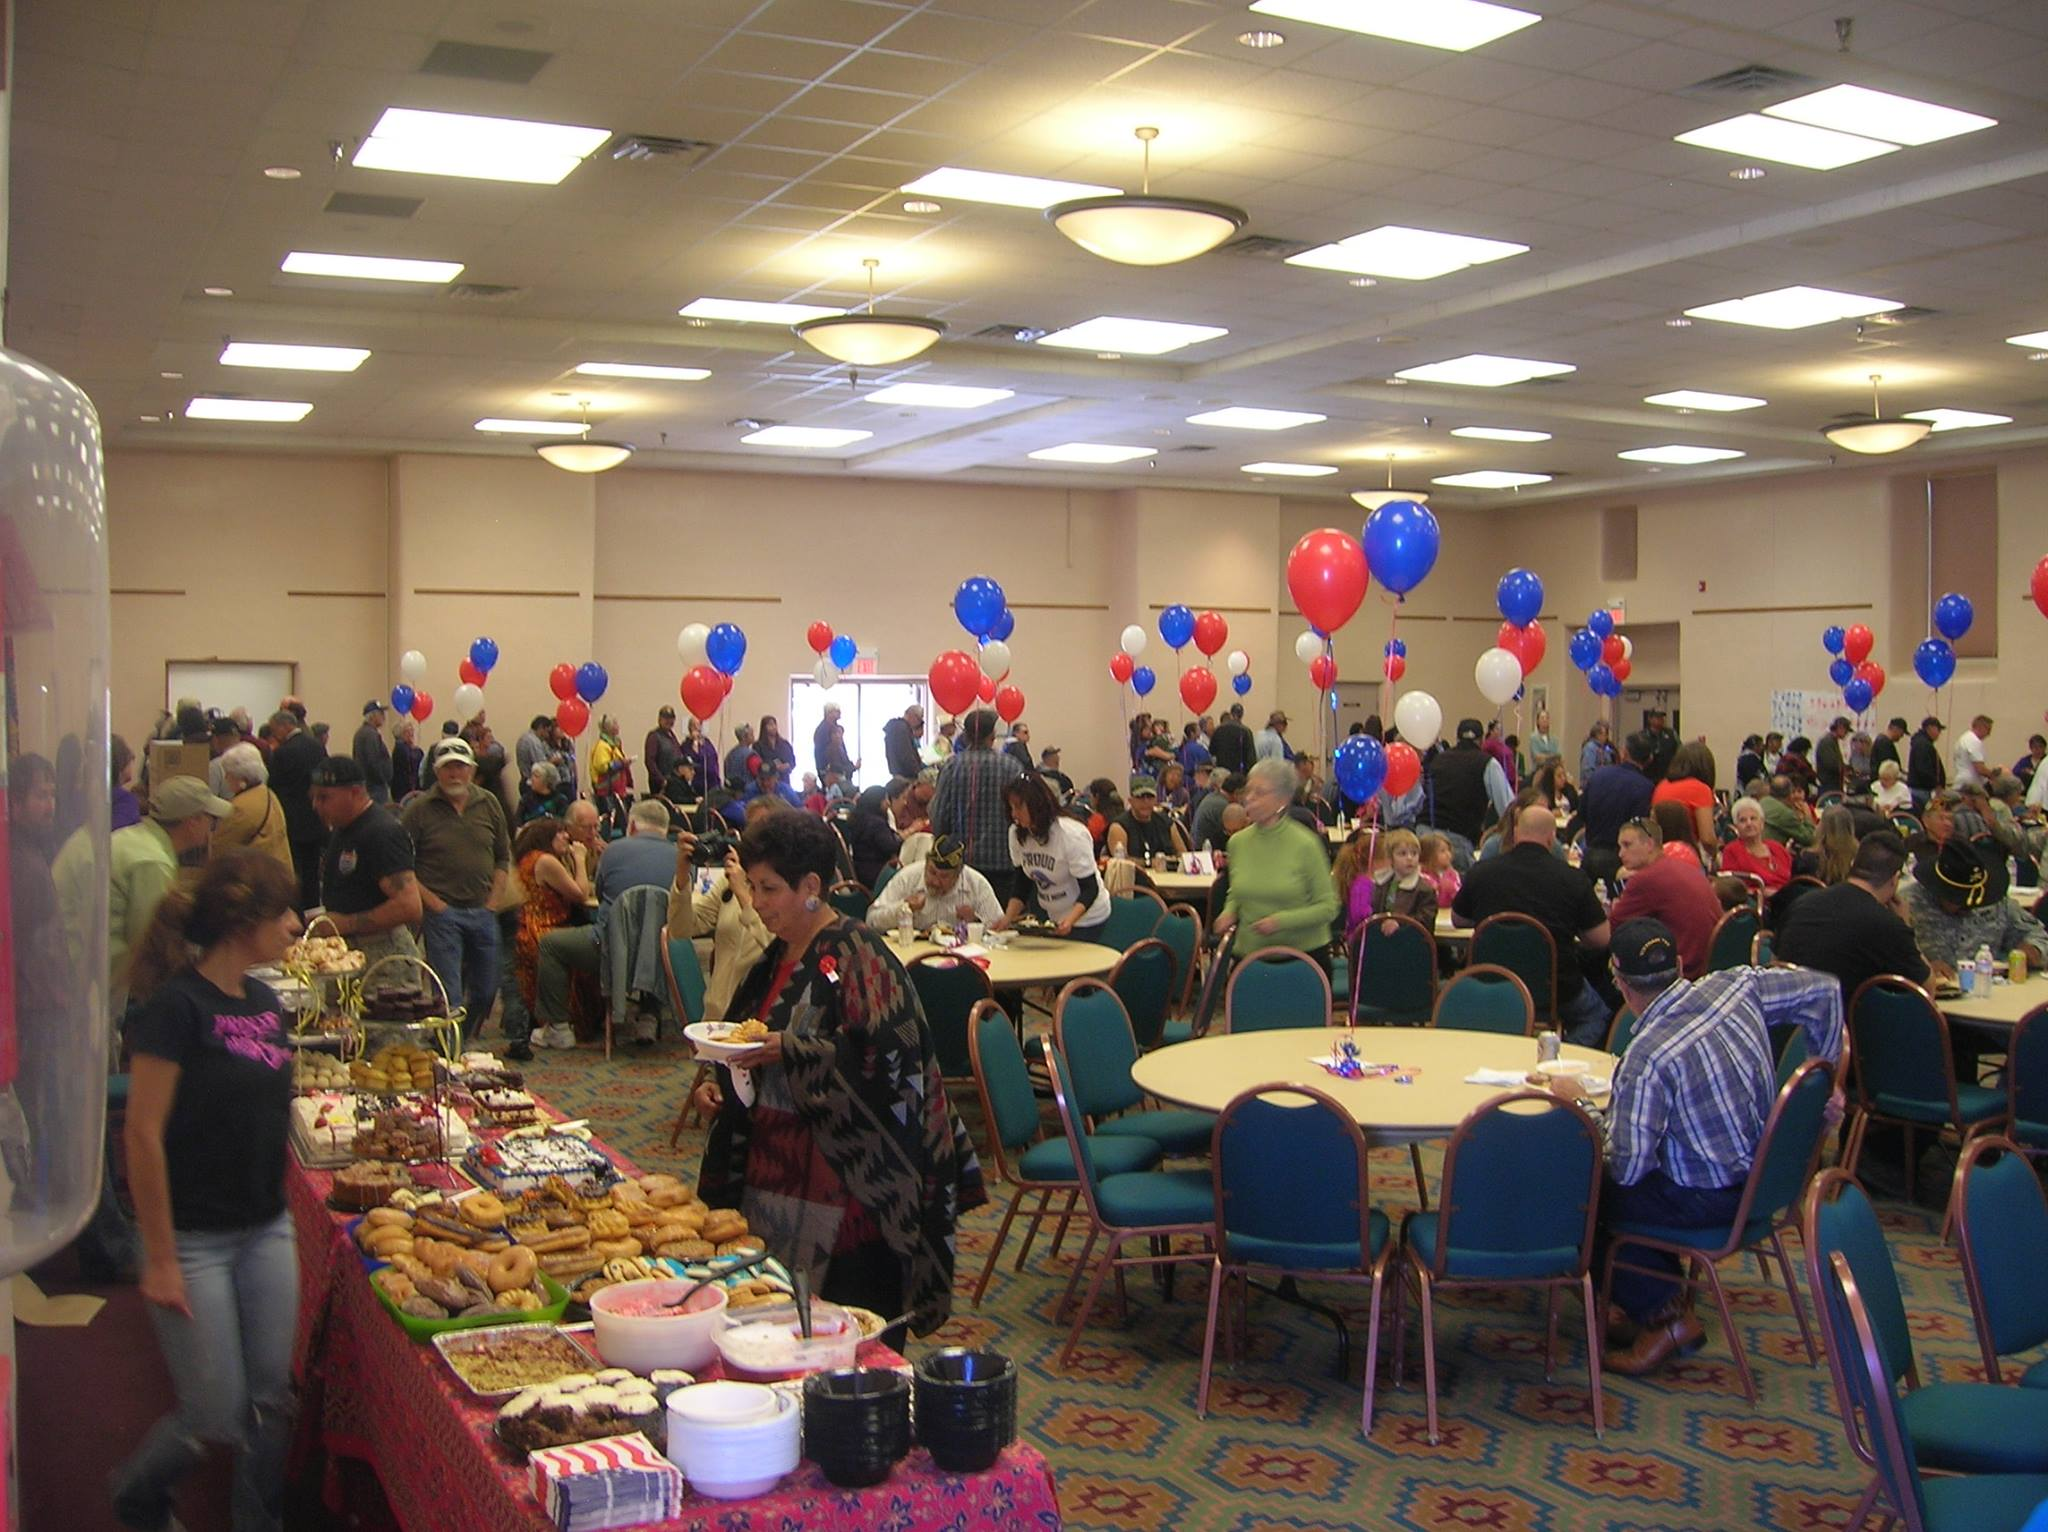 Big crowd in bright event room, cornucopia of baked goods in foreground, red, white, and blue balloons floating throughout